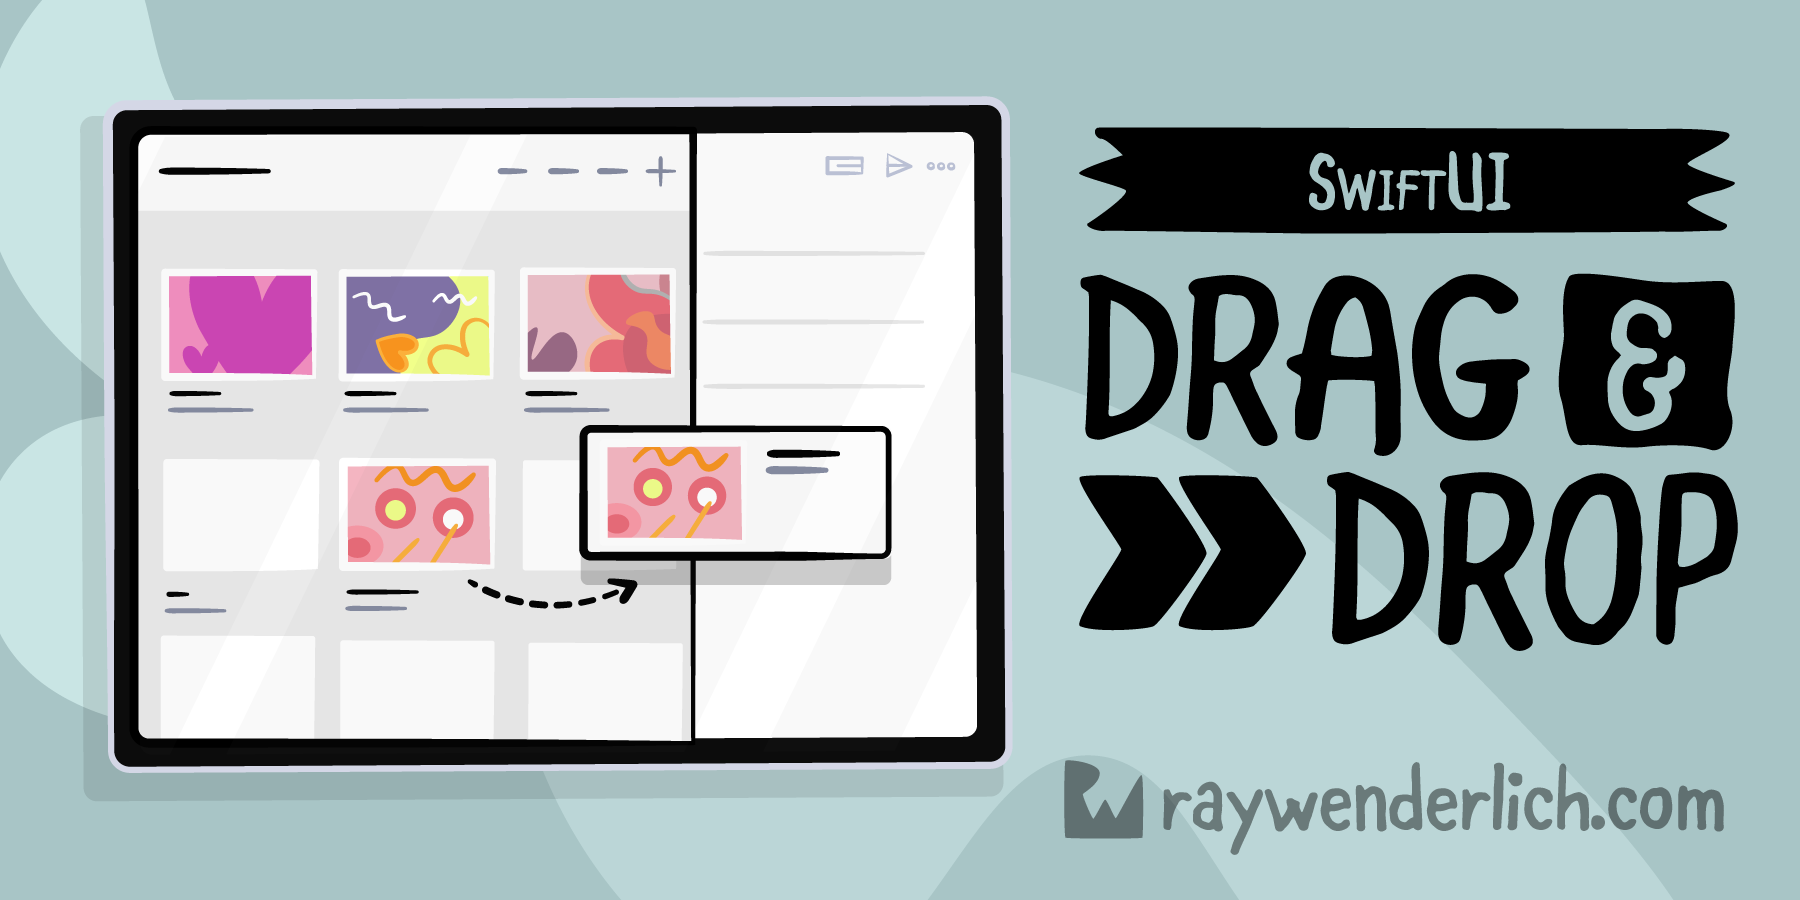 Drag and Drop Tutorial for SwiftUI [FREE]